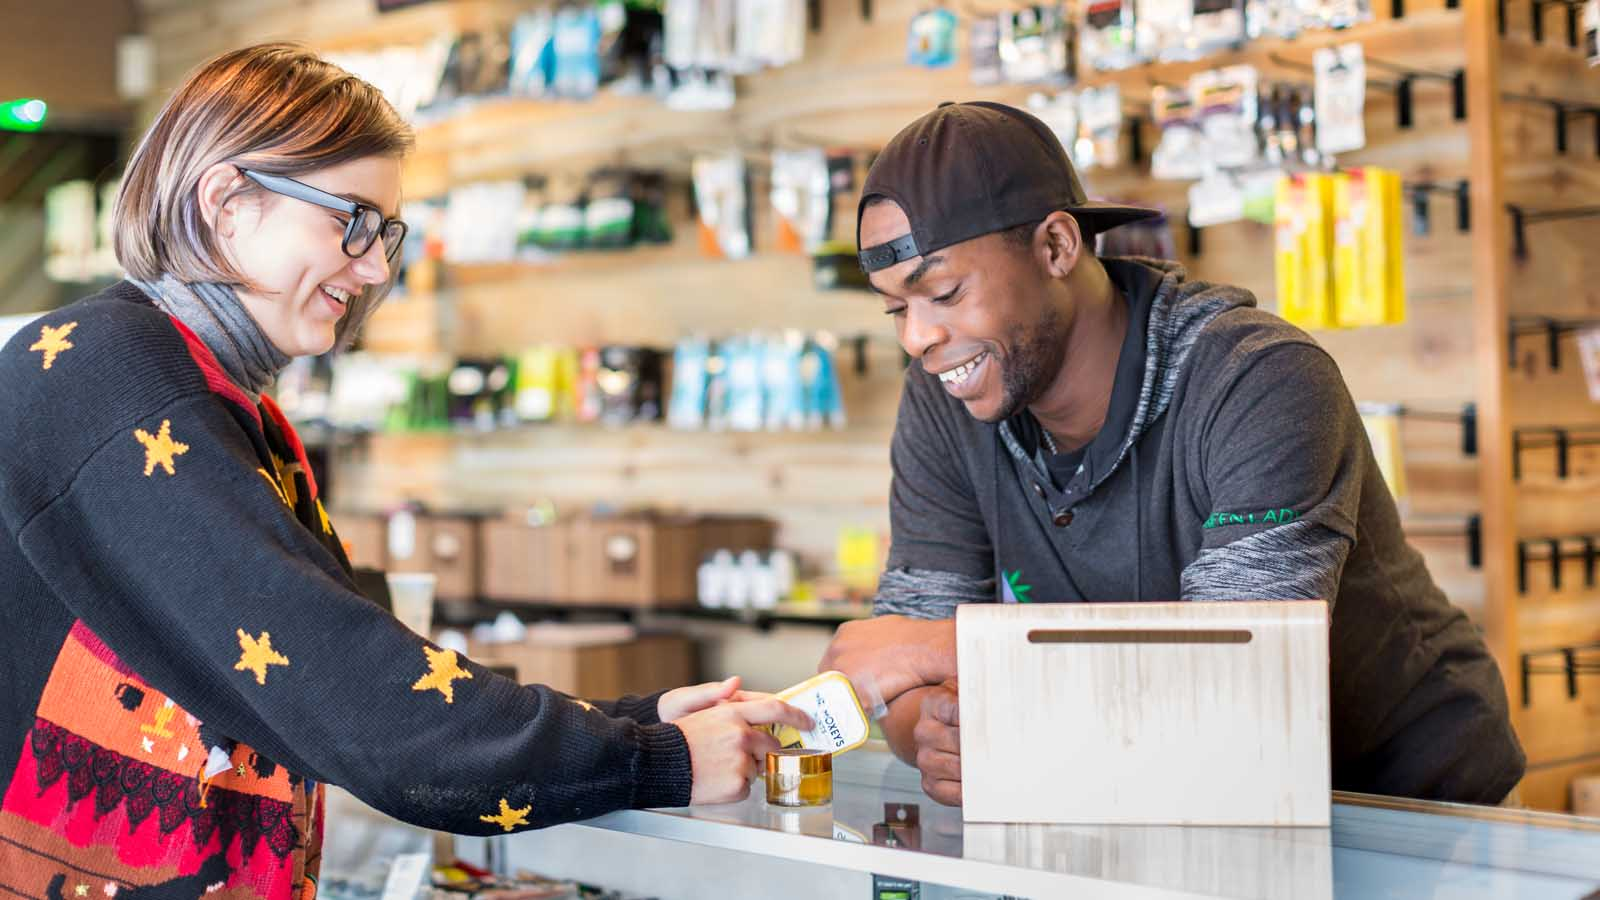 Canada Cannabis Compliance: 5 Budtending Changes After Legalization